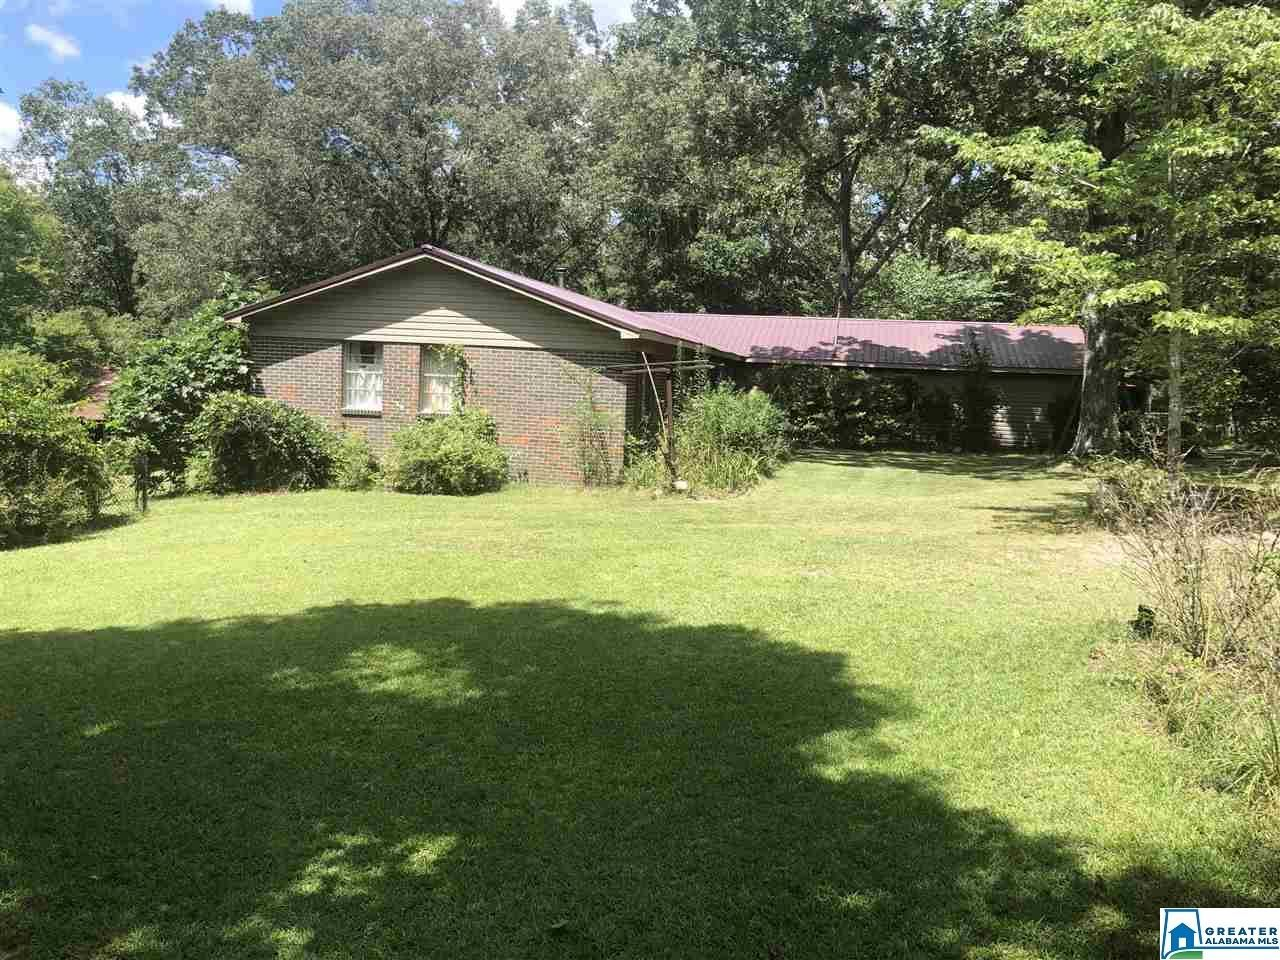 2095 KELLY CREEK RD, Moody, AL 35004 - MLS#: 890384